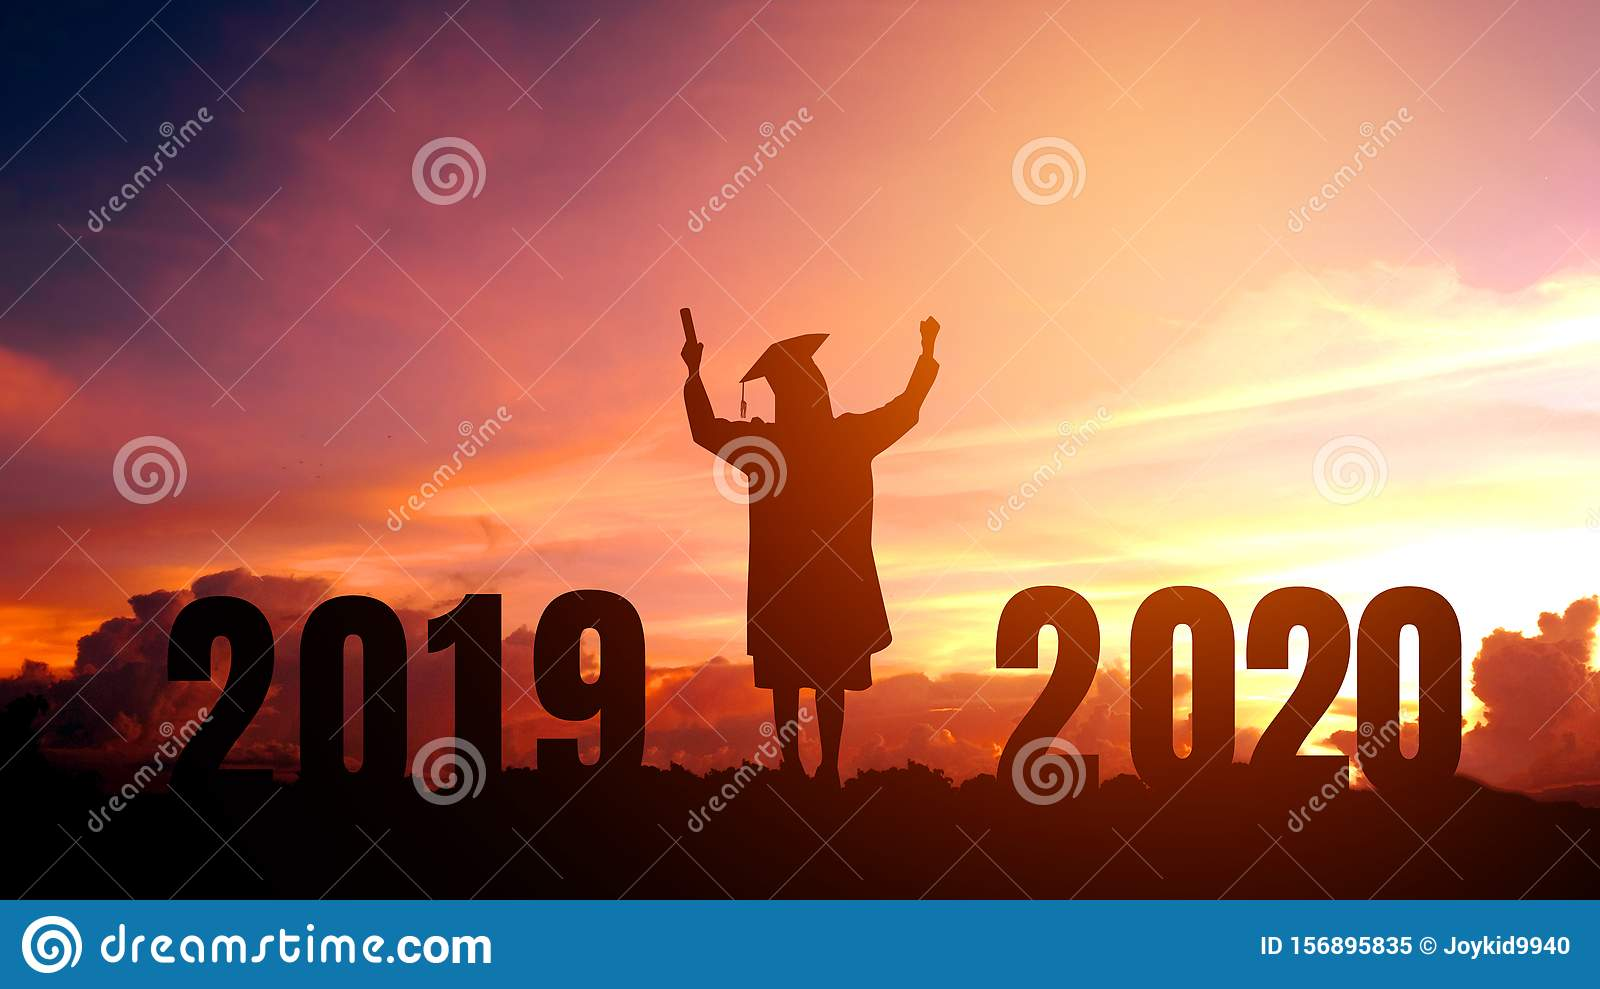 Happy Graduation 2020.2020 New Year Silhouette People Graduation In 2020 Years